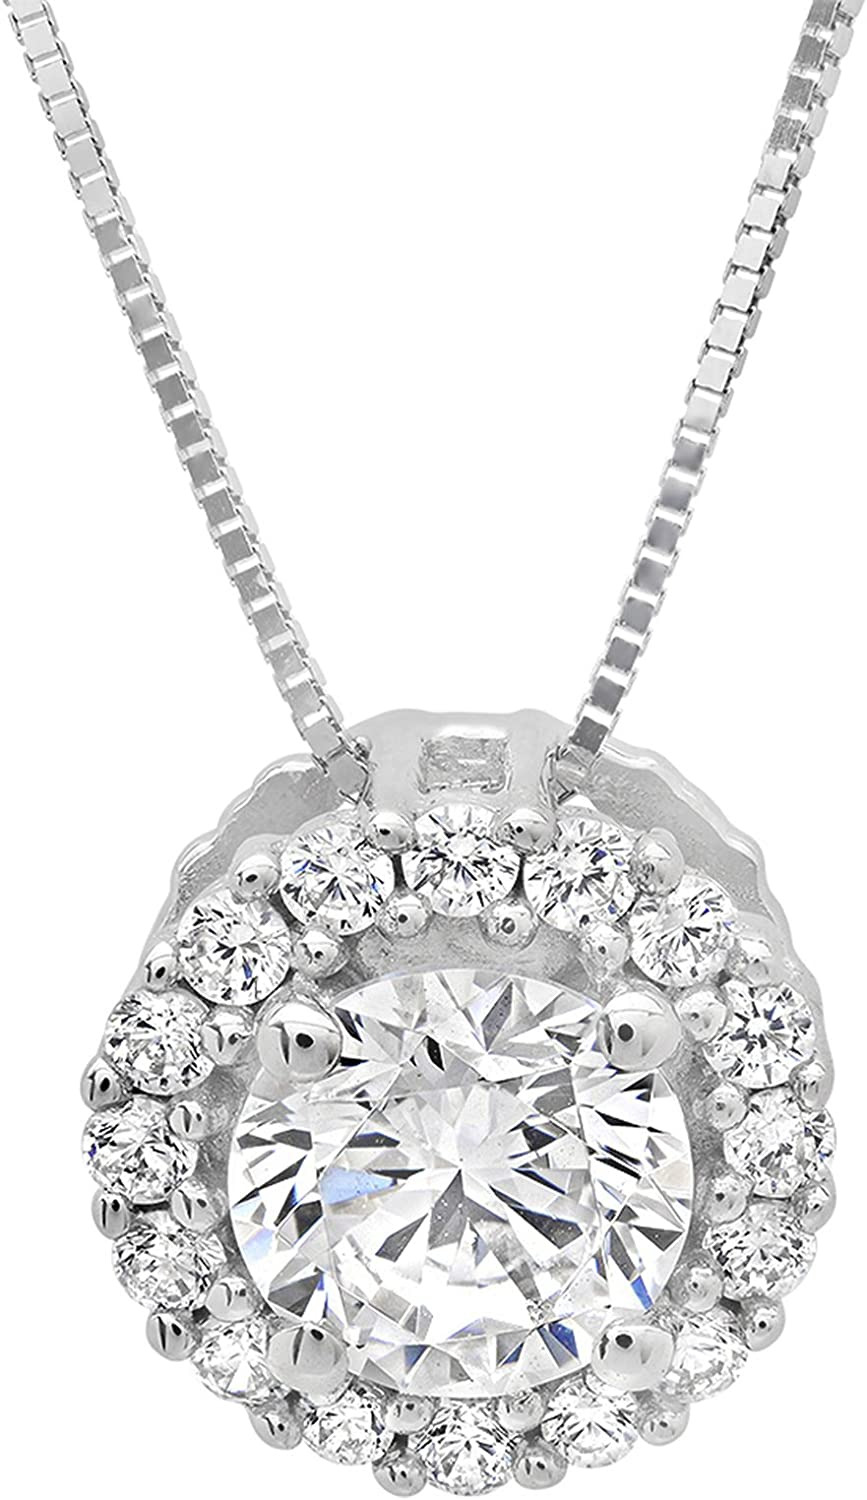 1.35 ct Brilliant Round Cut Pave Halo Stunning Genuine Created White Sapphire Ideal VVS1 D Solitaire Pendant Necklace With 16